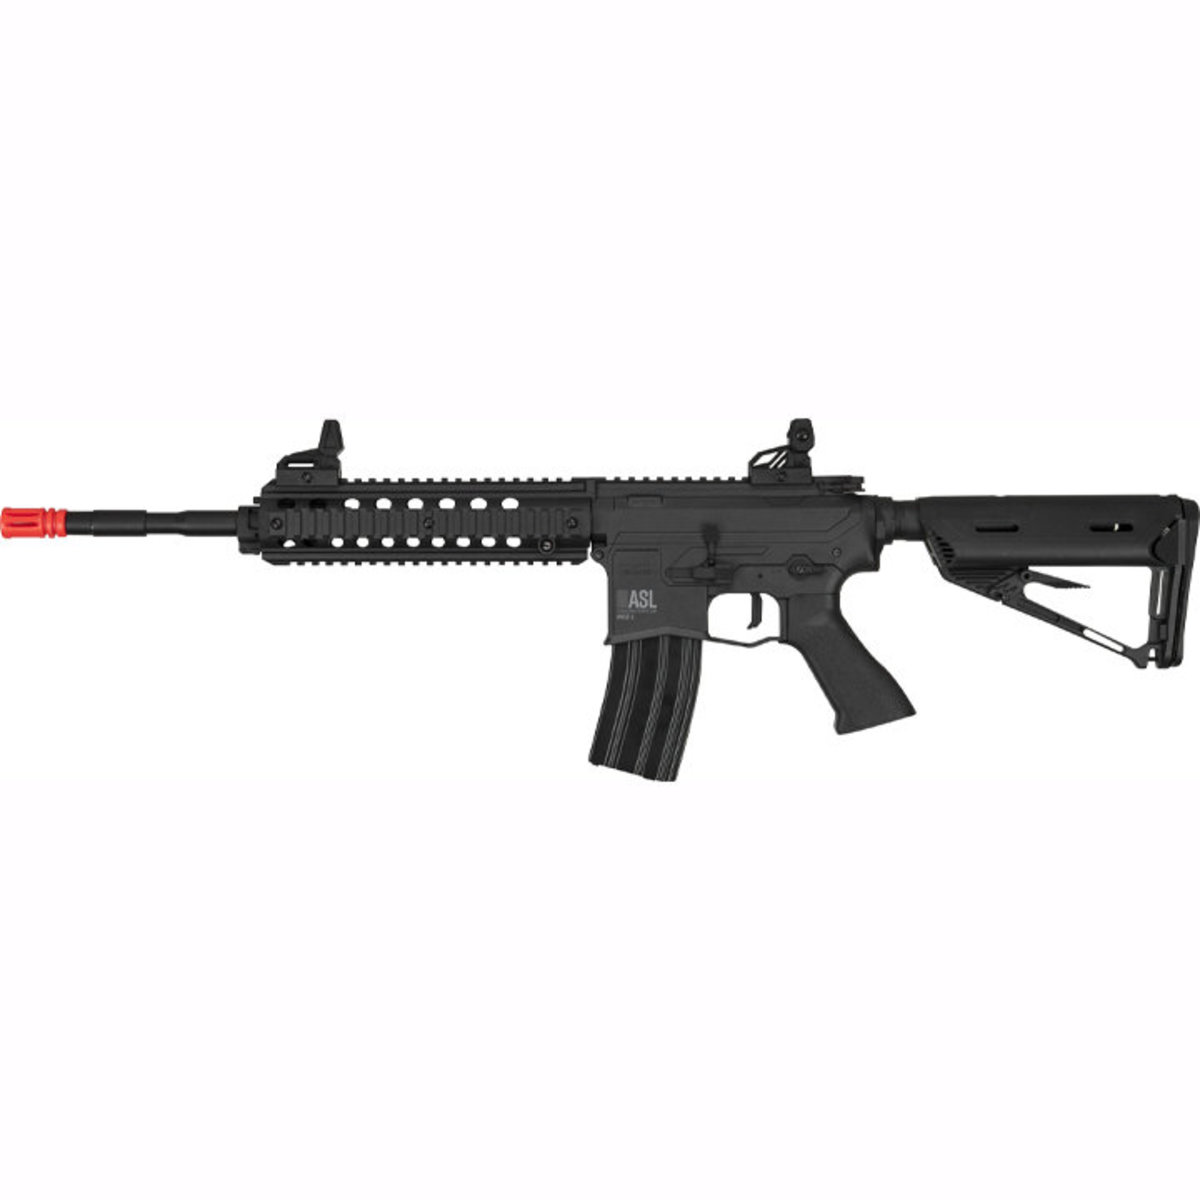 View larger image of Valken ASL Hi-Velocity MOD-L AEG Rifle